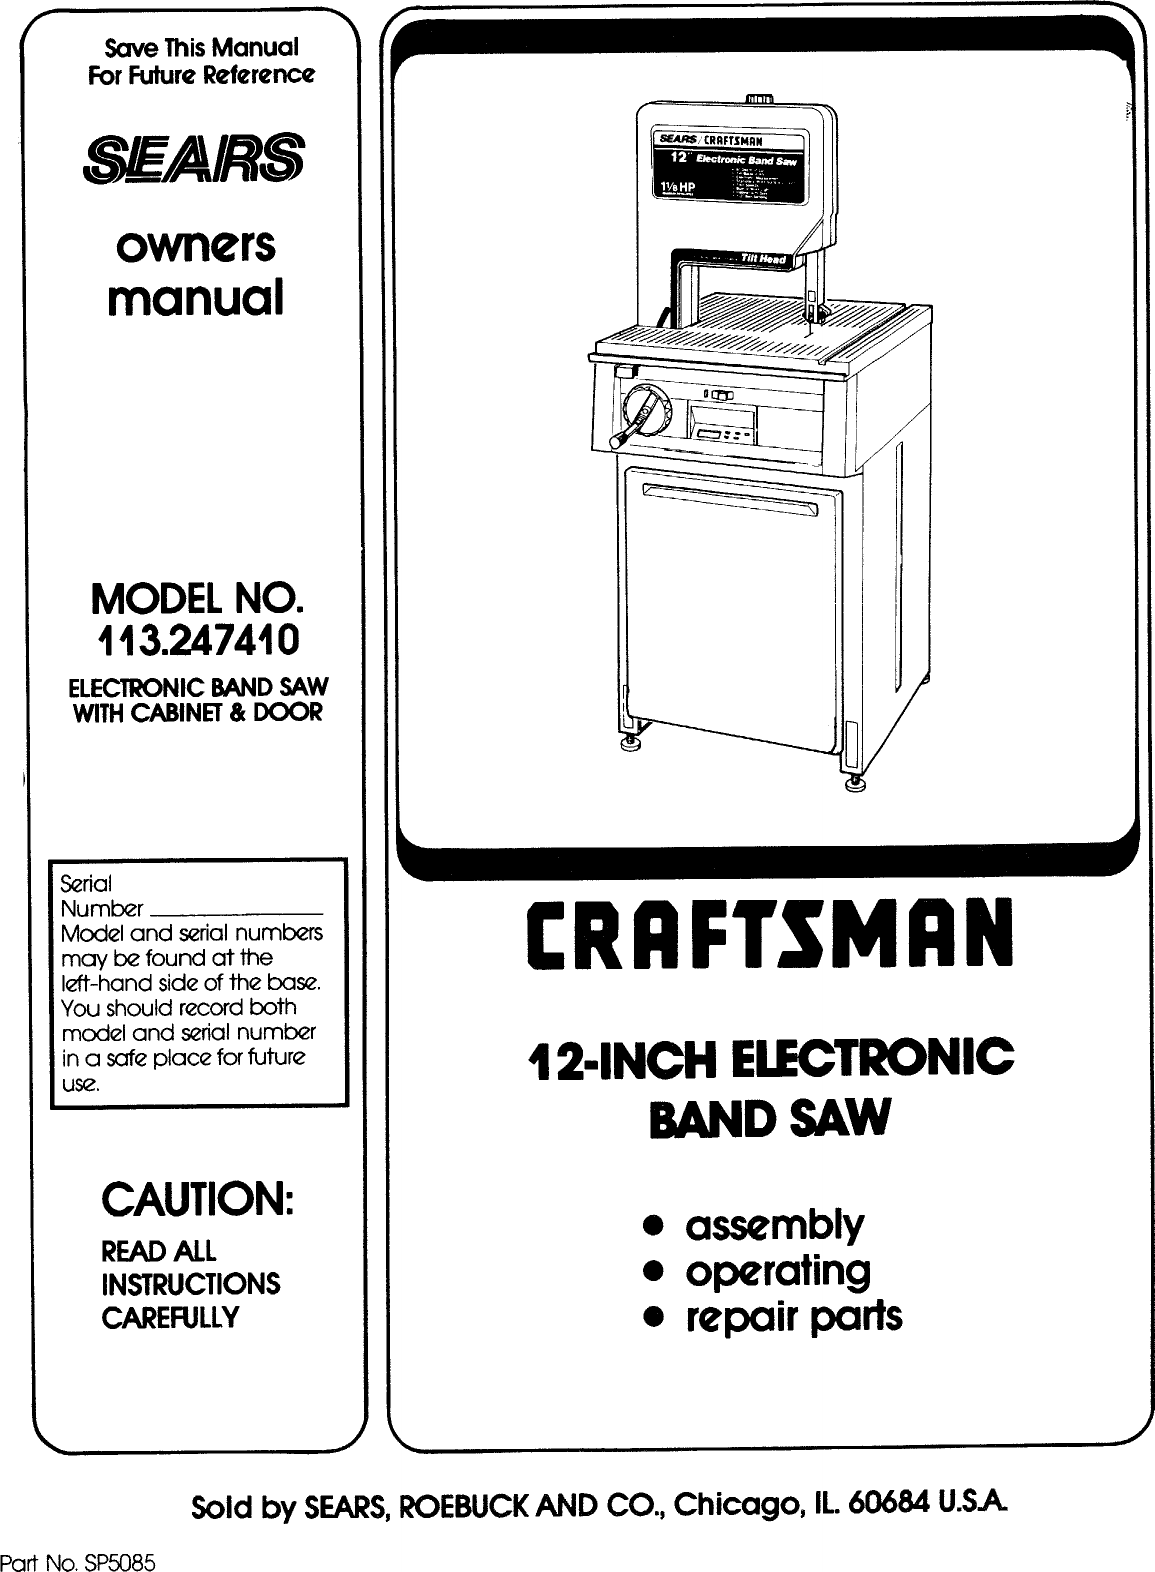 Craftsman 113247410 User Manual 12 INCH ELECTRONIC BAND